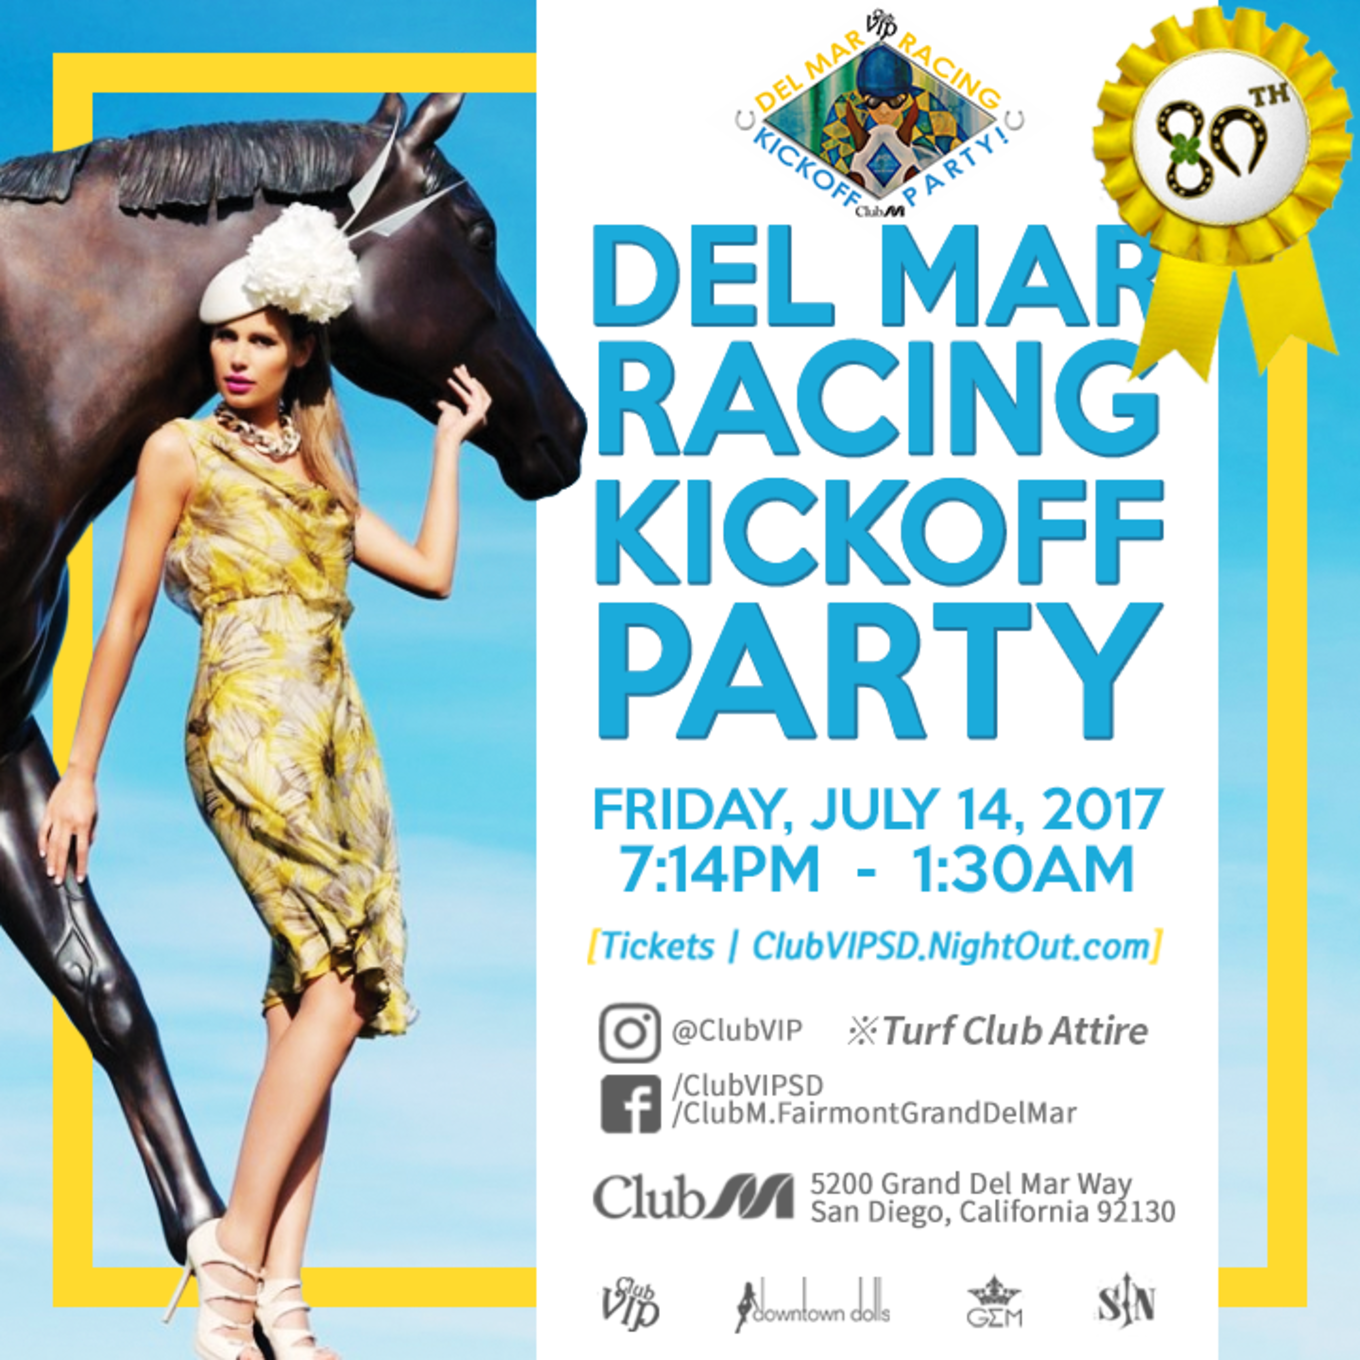 80th Del Mar Racing Kickoff Party